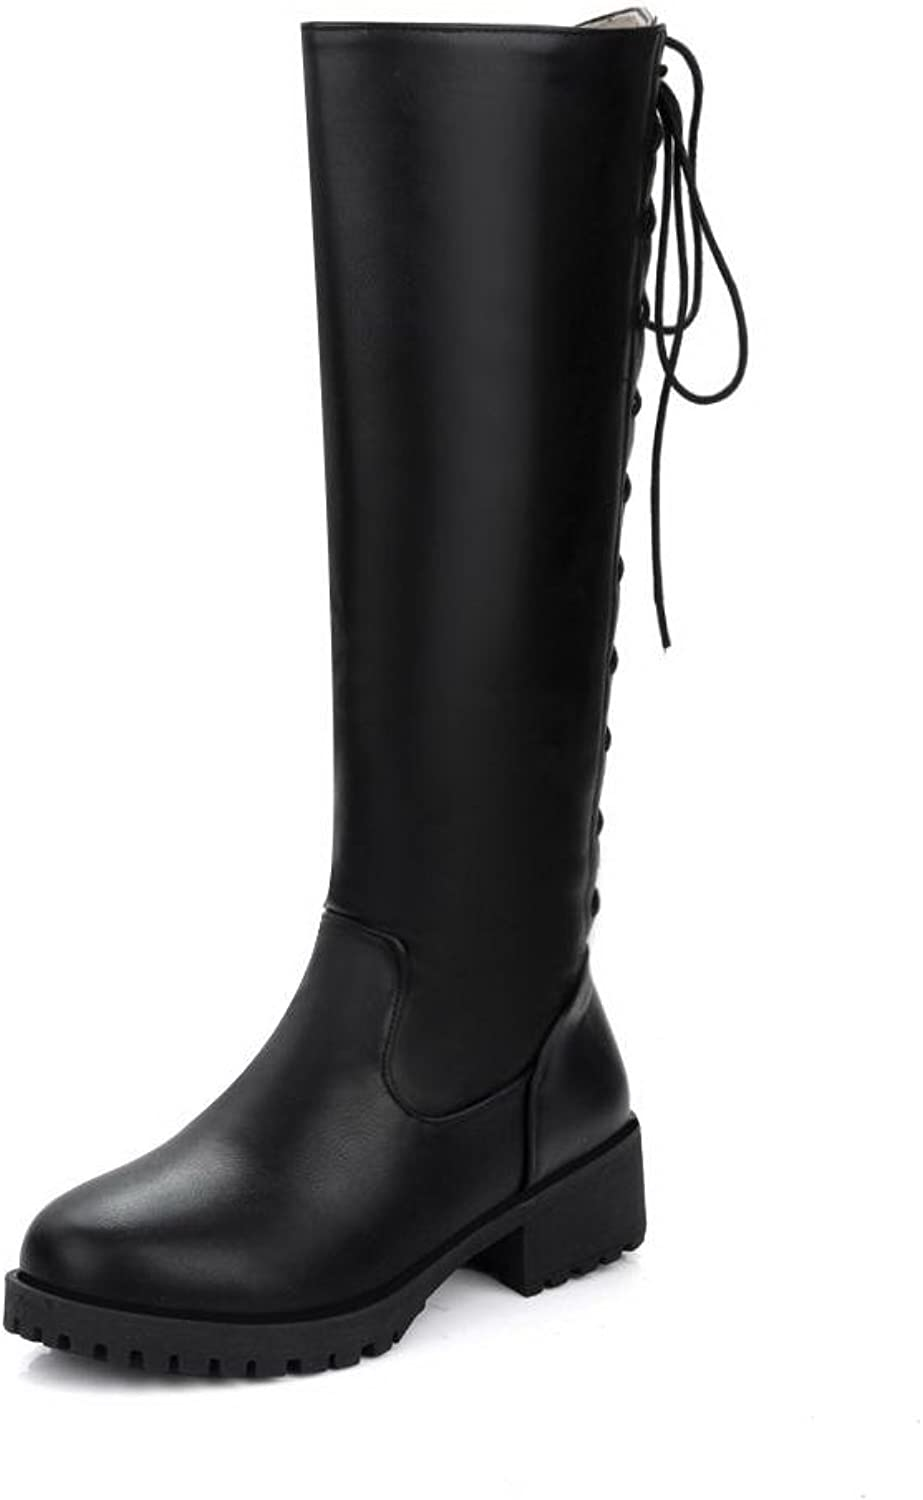 AllhqFashion Women's Pu High Top Solid Zipper Low Heels Boots